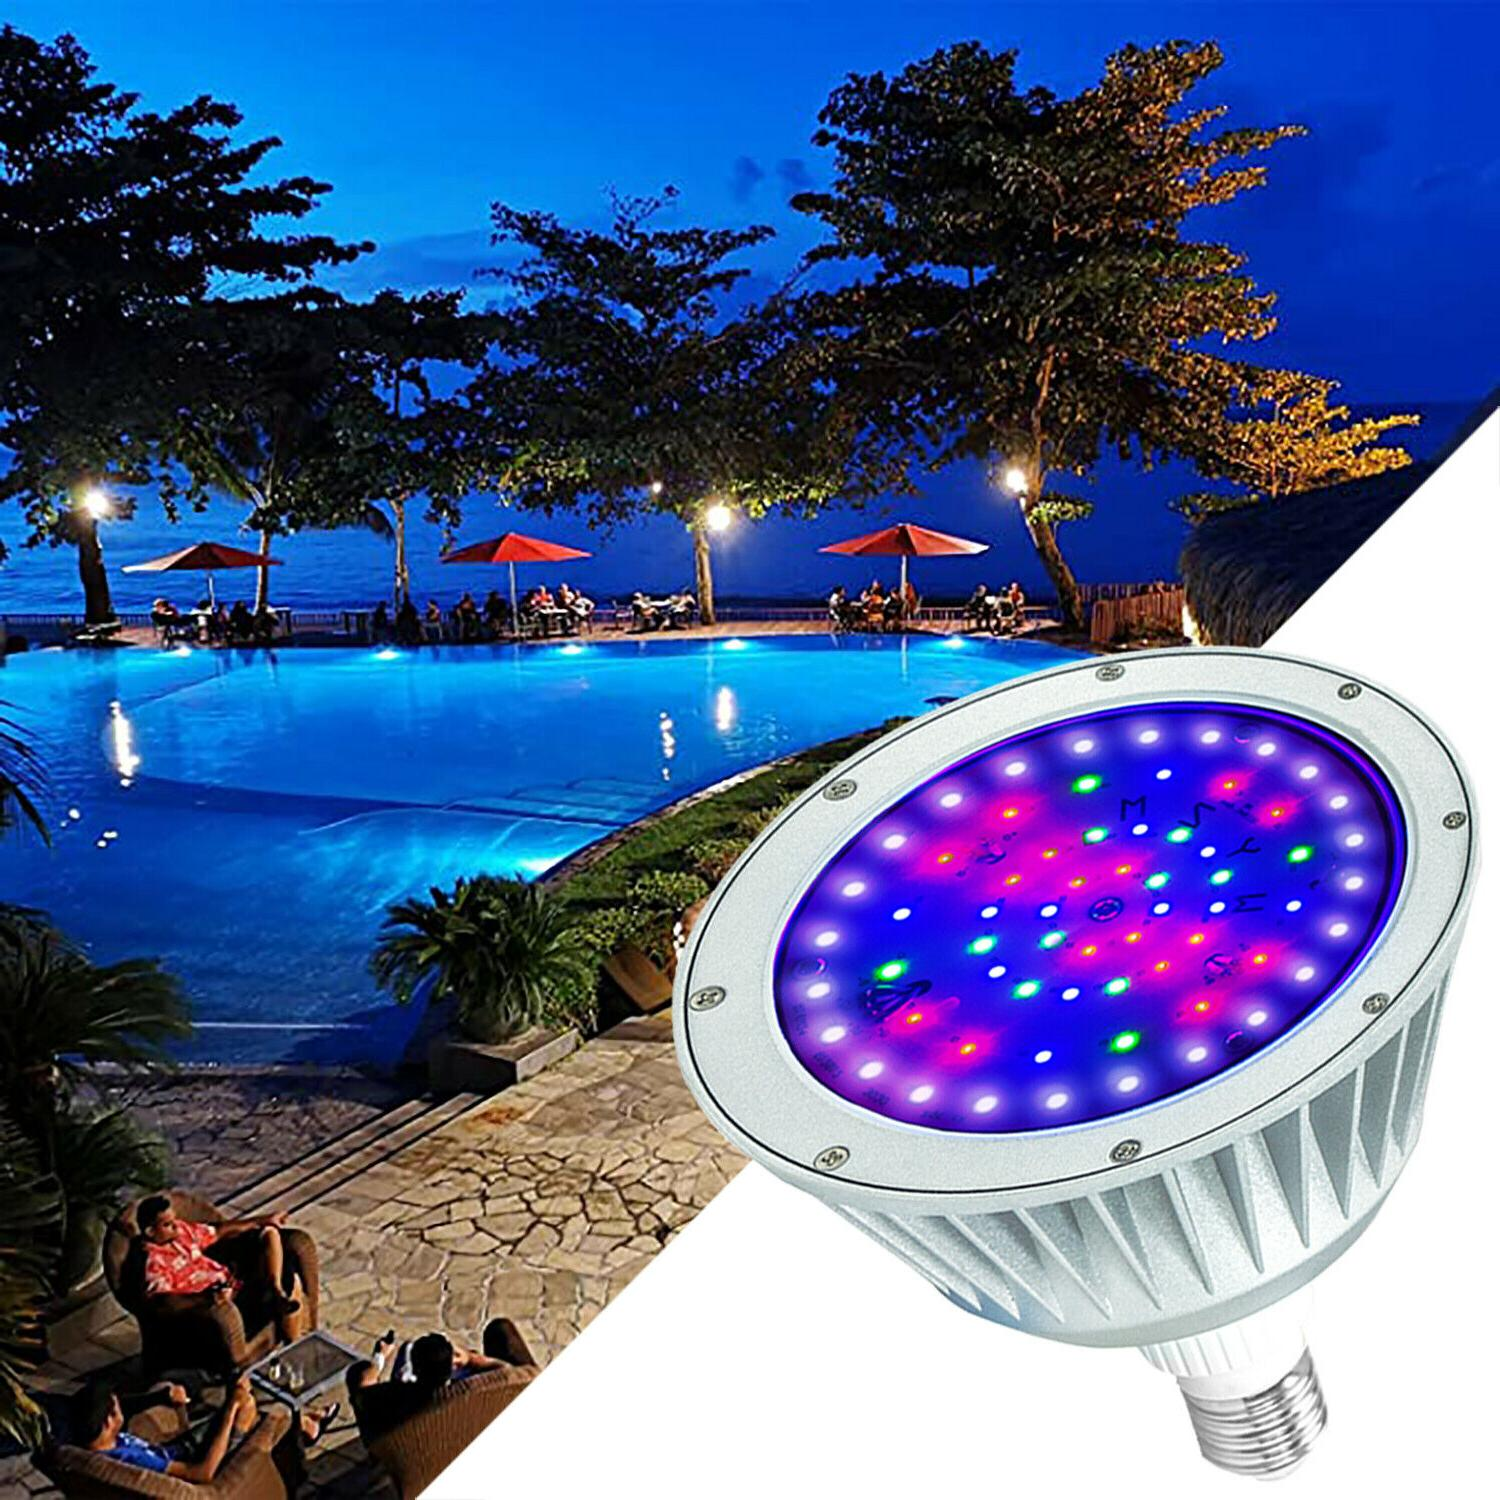 Light Replacement 500W Fixture